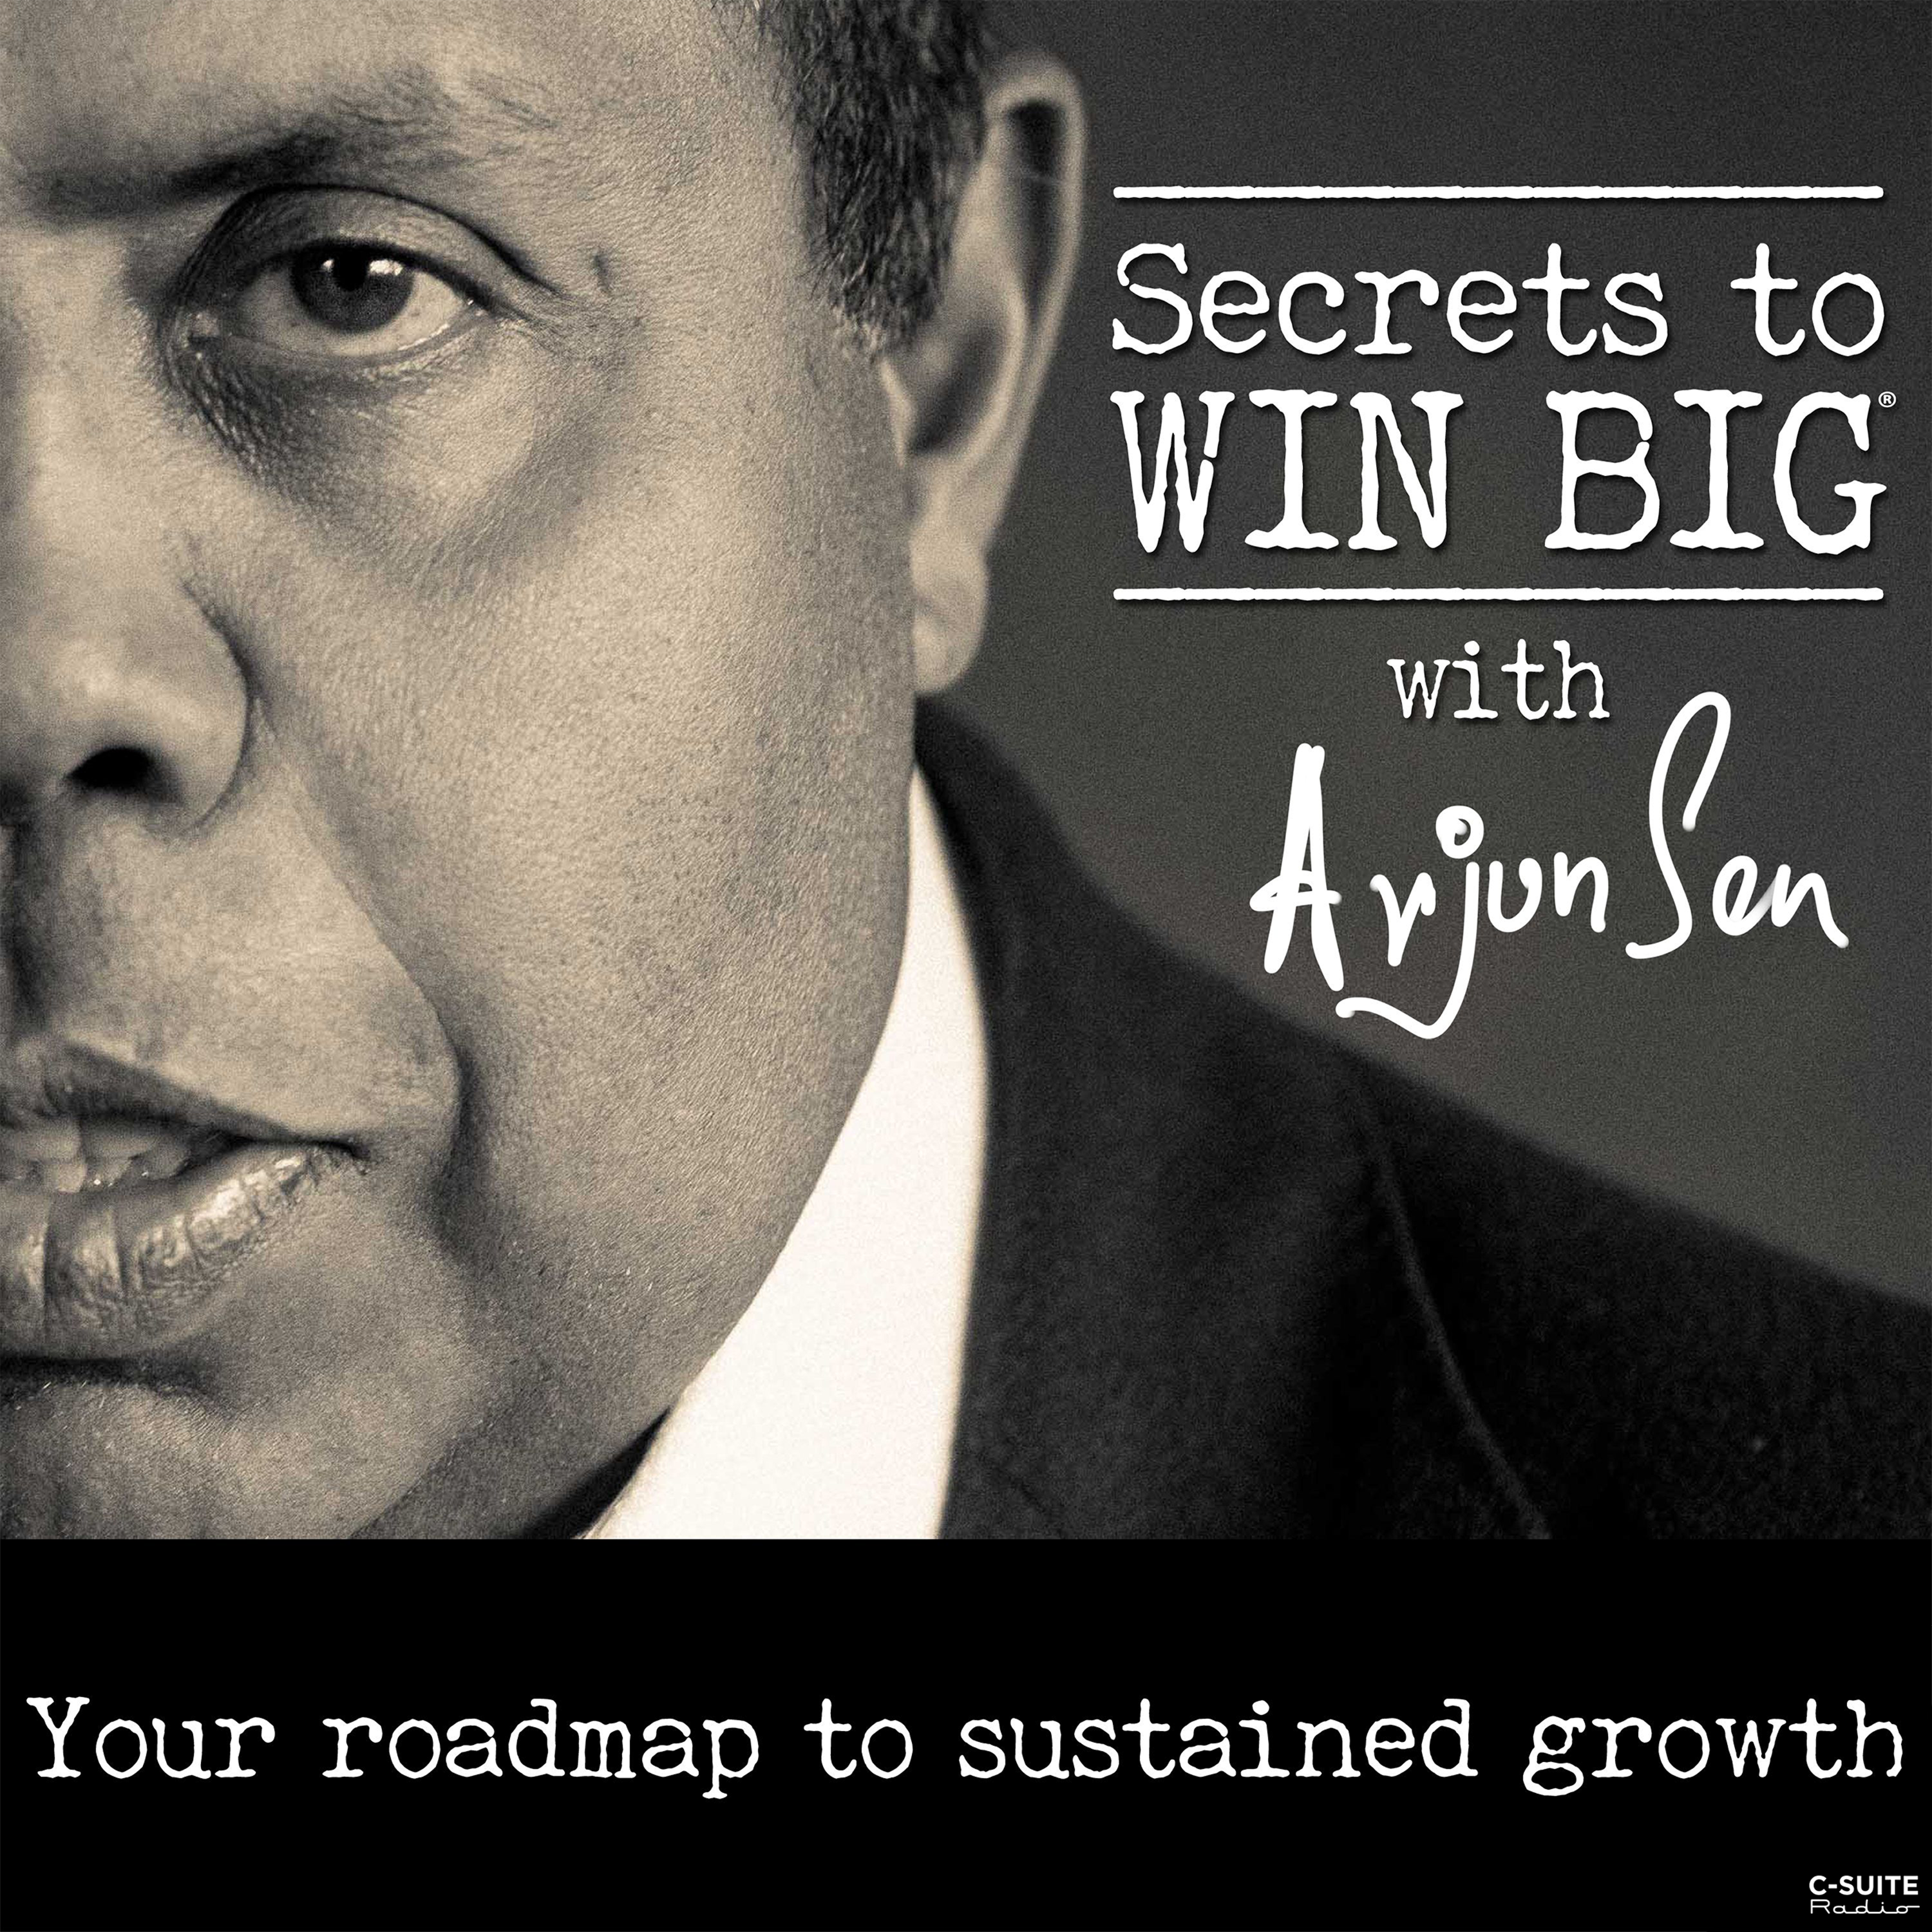 Accelerate Revenue Growth with VIP Guest Darrell Amy